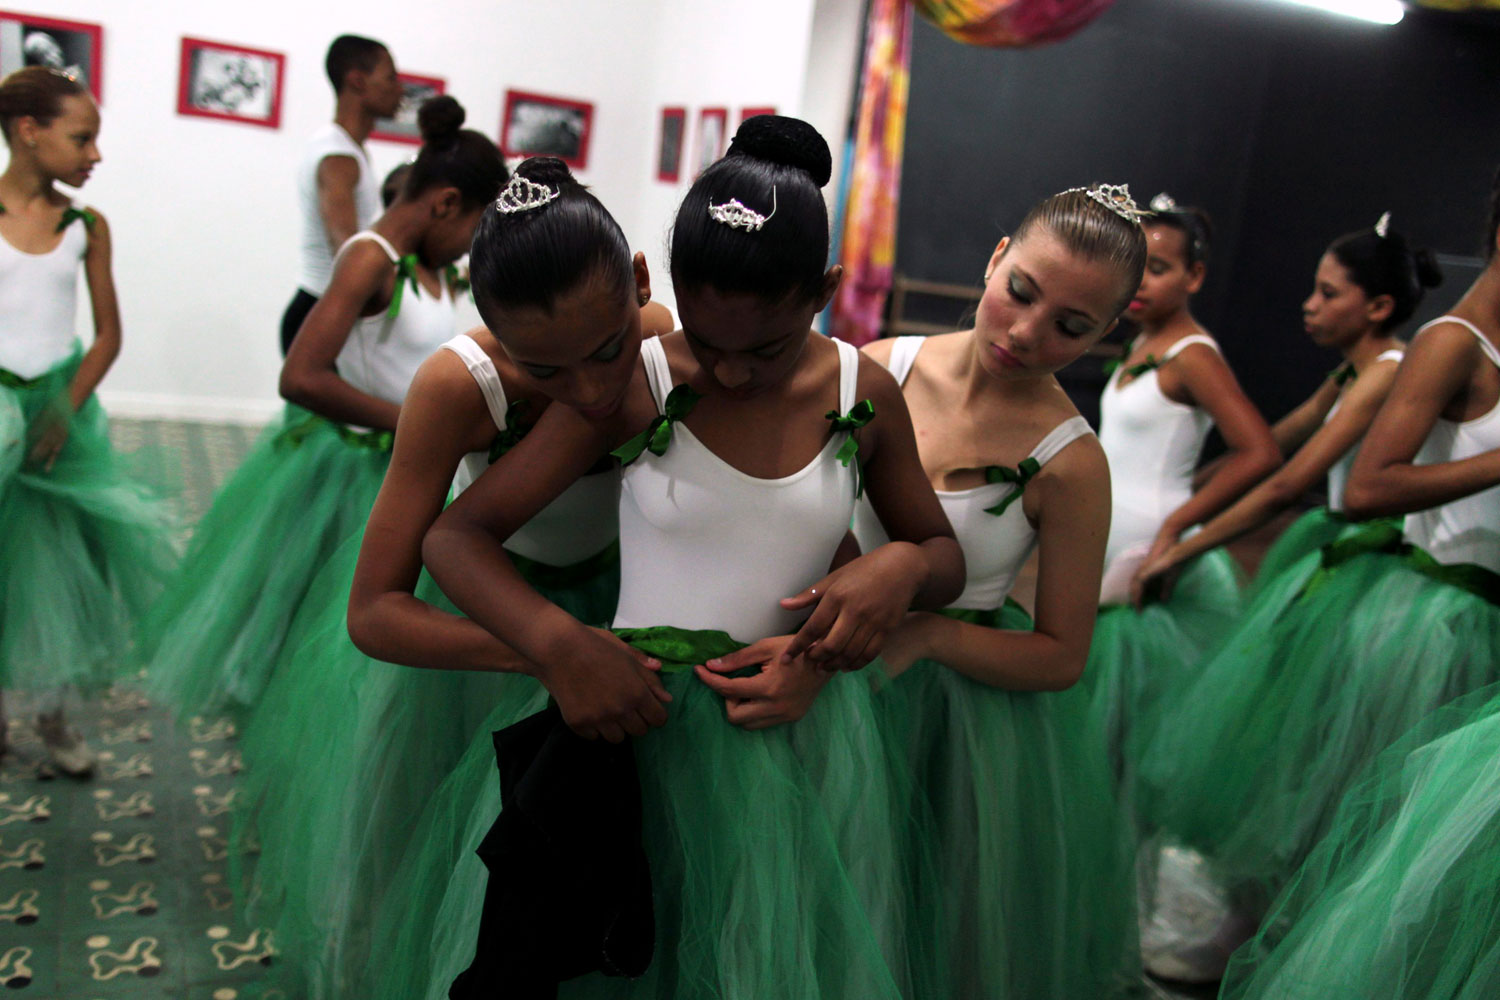 Aug. 13, 2012. Girls fit their ballet skirts during their ballet class at the 'Ballet Santa Teresa' academy in Rio de Janeiro. 'Ballet Santa Teresa', a non-governmental organization (NGO) gives children who live in areas with social risk, some suffering domestic violence, free ballet classes and other activities as a part of socio-cultural integration project.